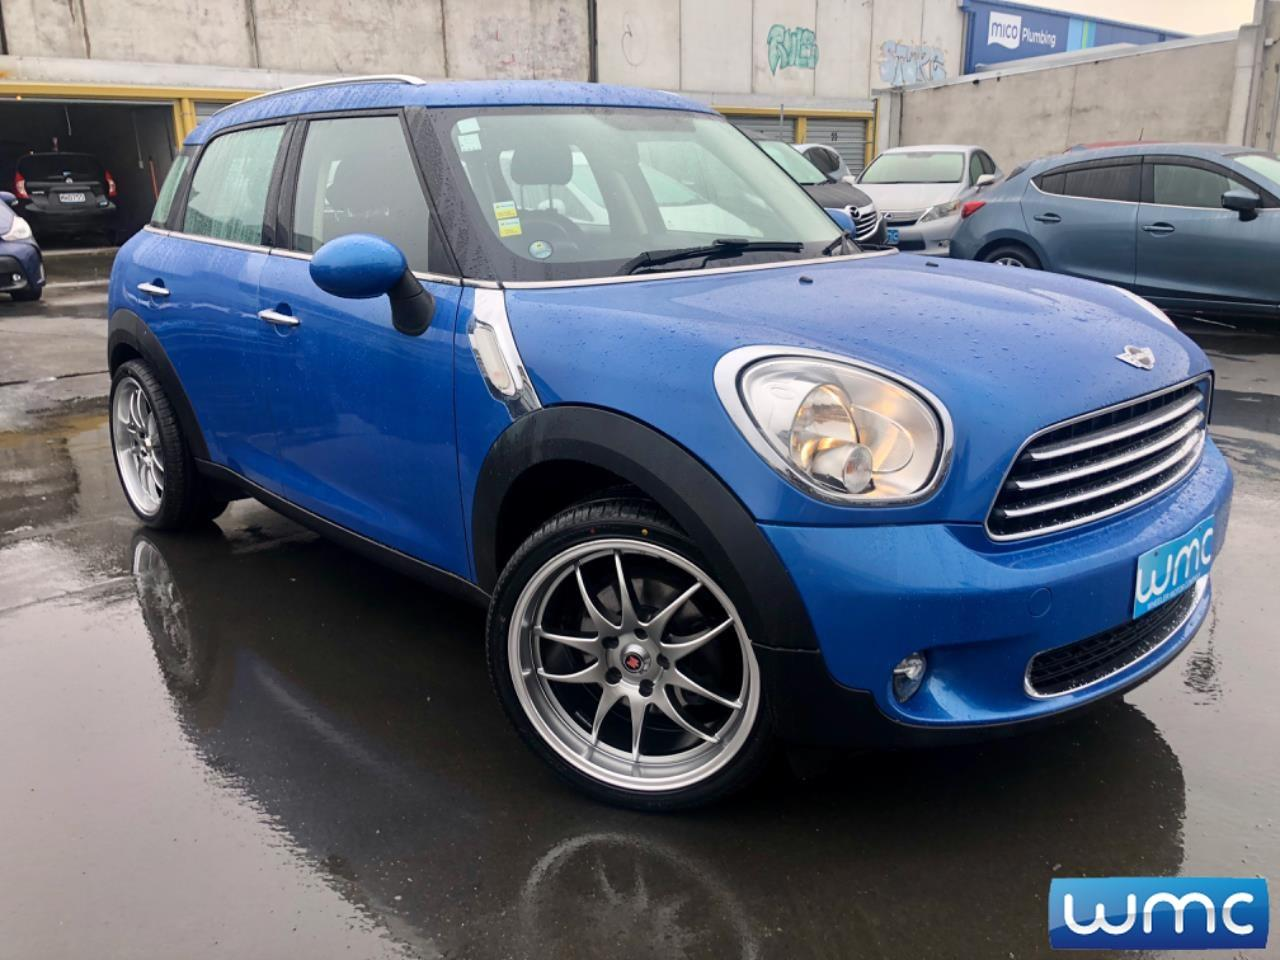 image-0, 2013 Mini Countryman Crossover at Christchurch